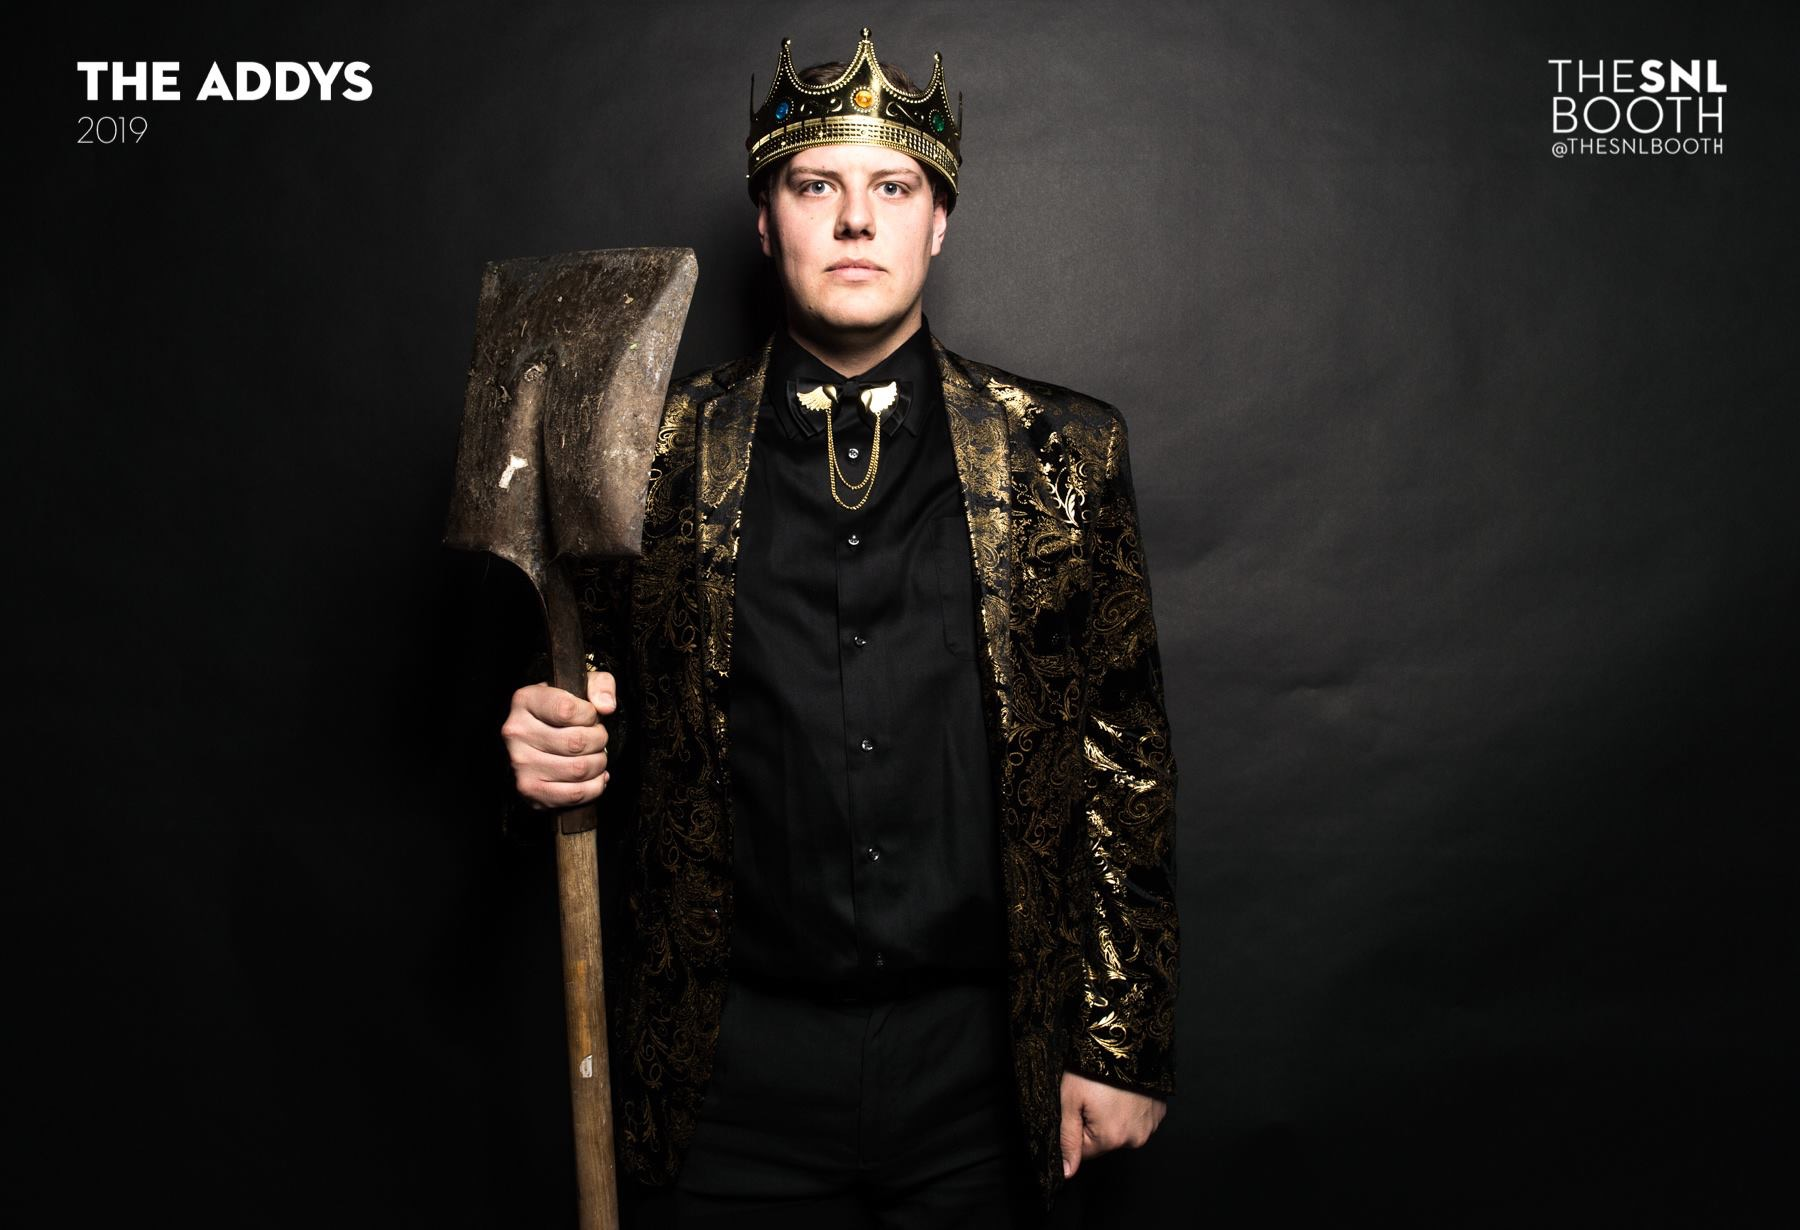 Troy Huddleston is the king of the Addys